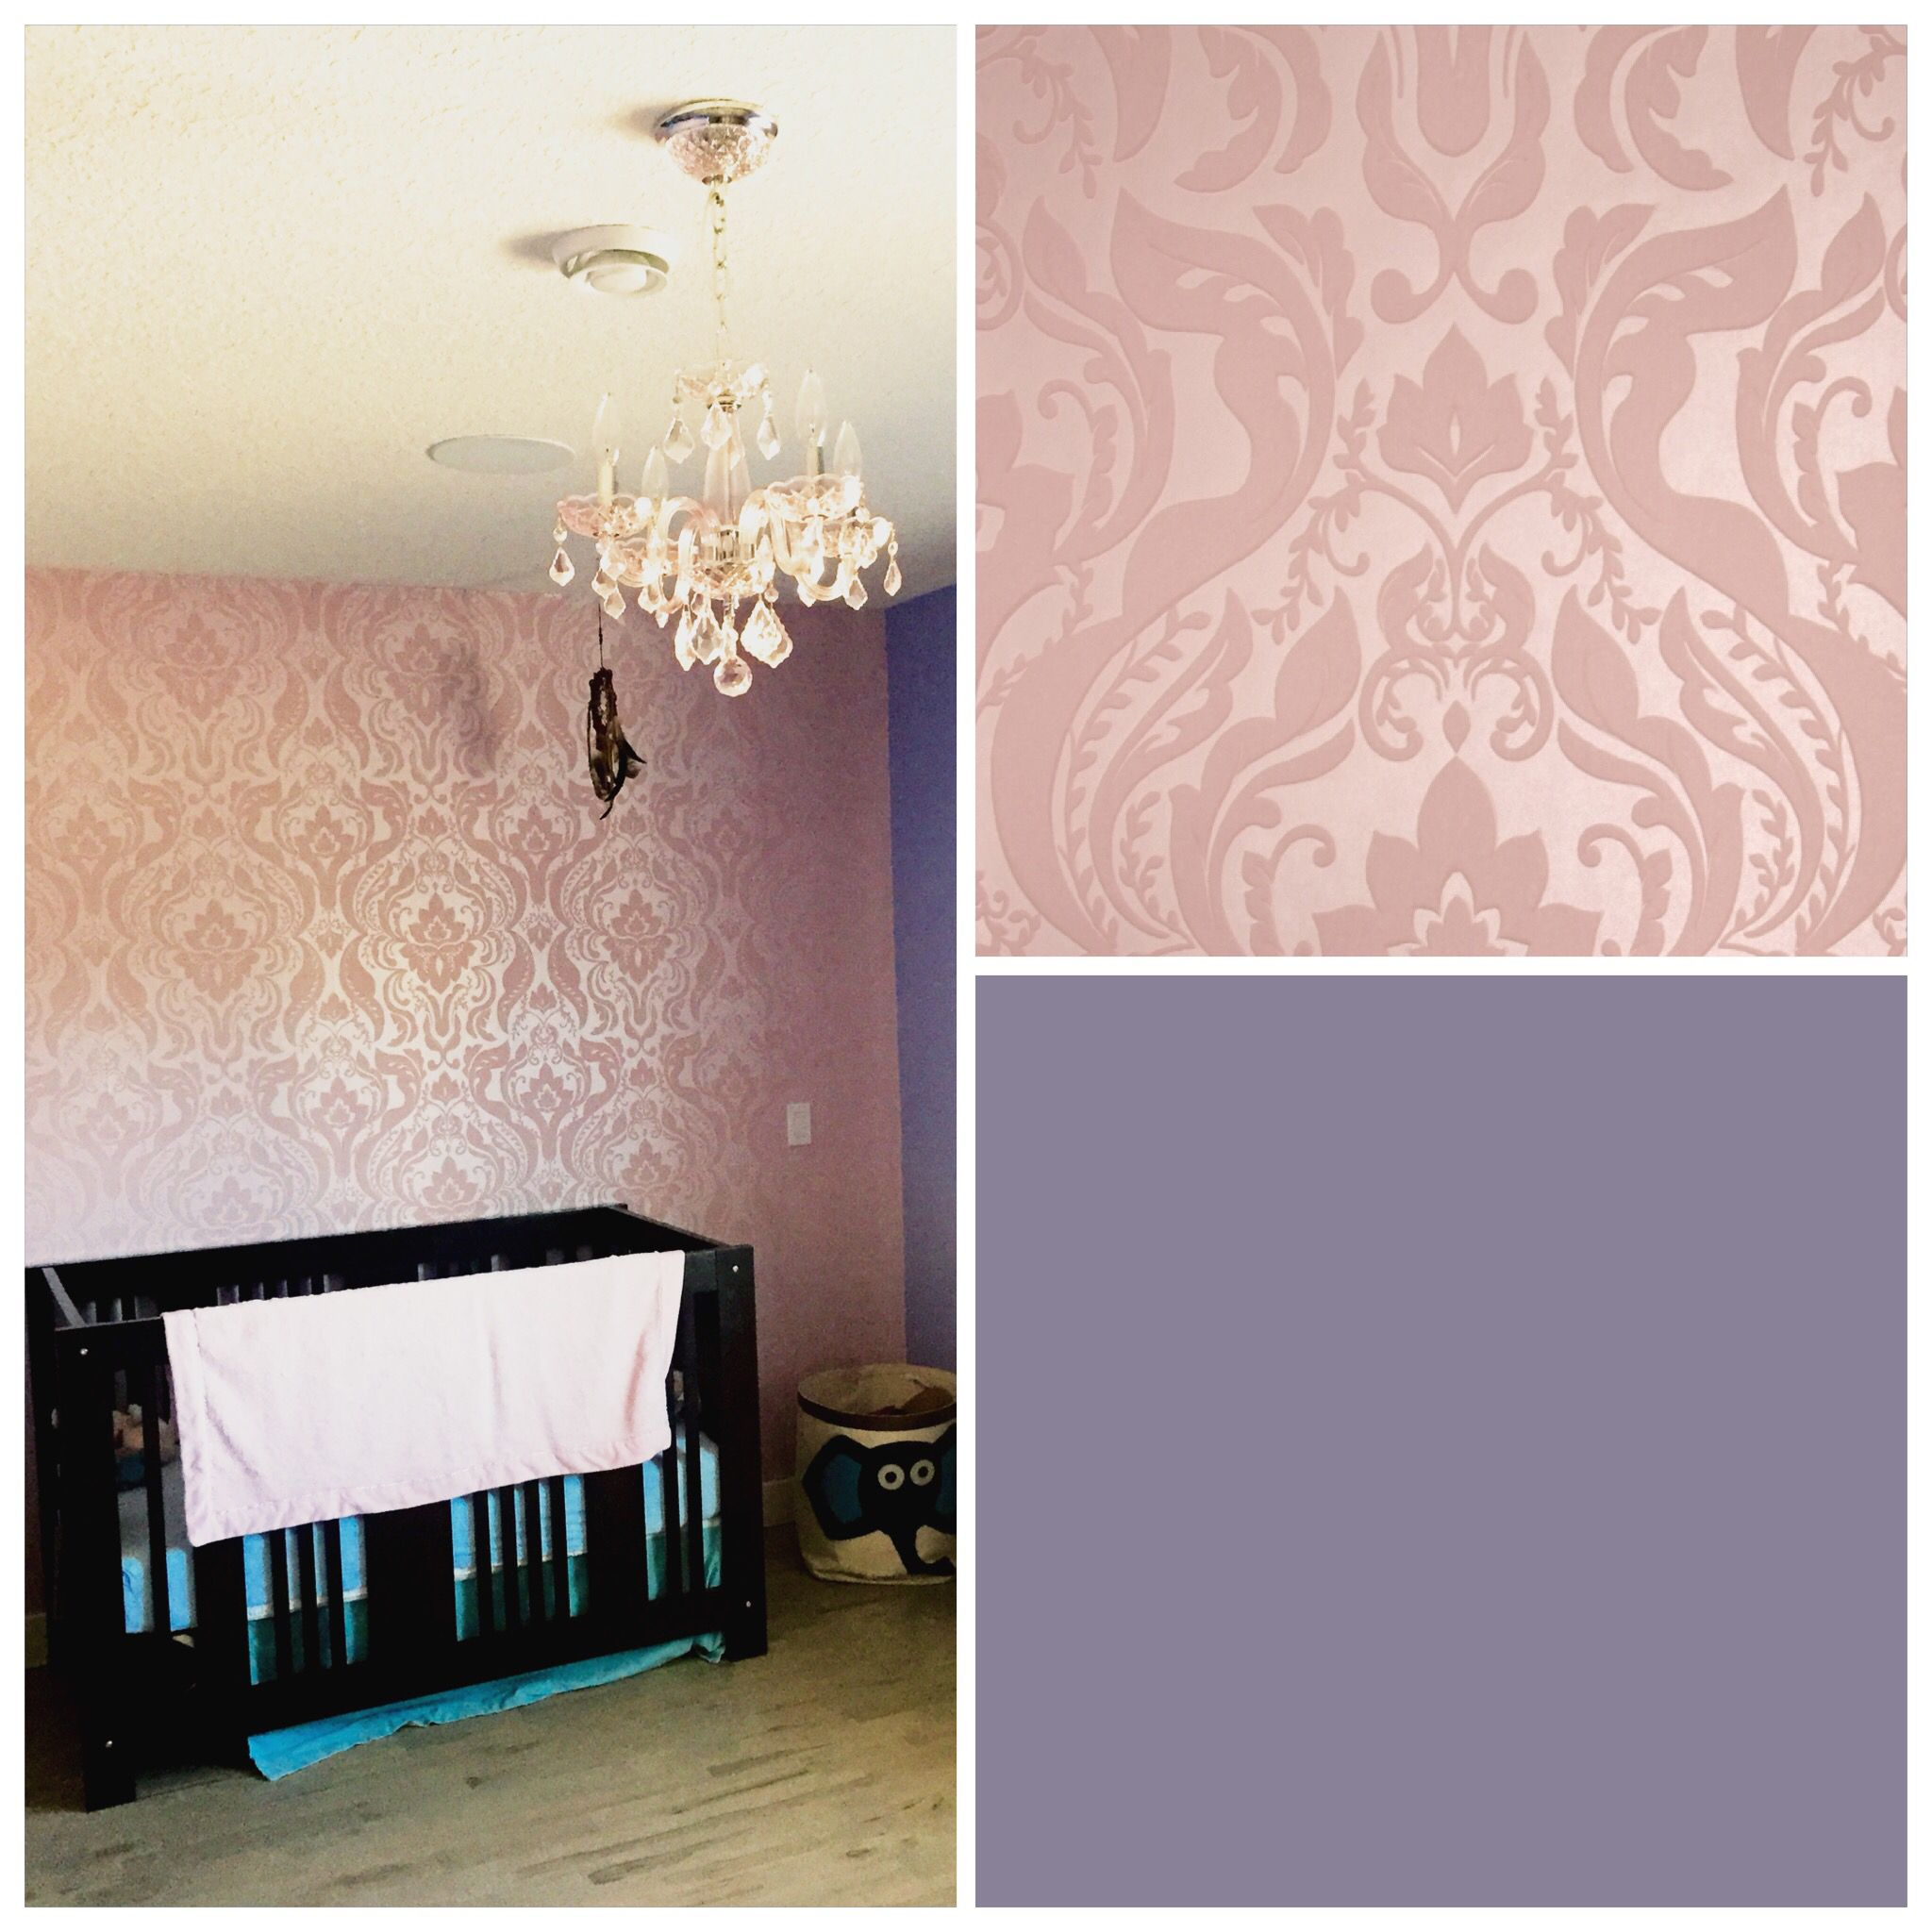 Soft pink flocked damask wallpaper by JF Fabrics from Magique Book was selected to complement pastel purples and pick crystal chandelier #yyc #calgary #wallsalive #jffabrics #wallpaper #pinkdamask #flockedwallpaper #girlsbedroom